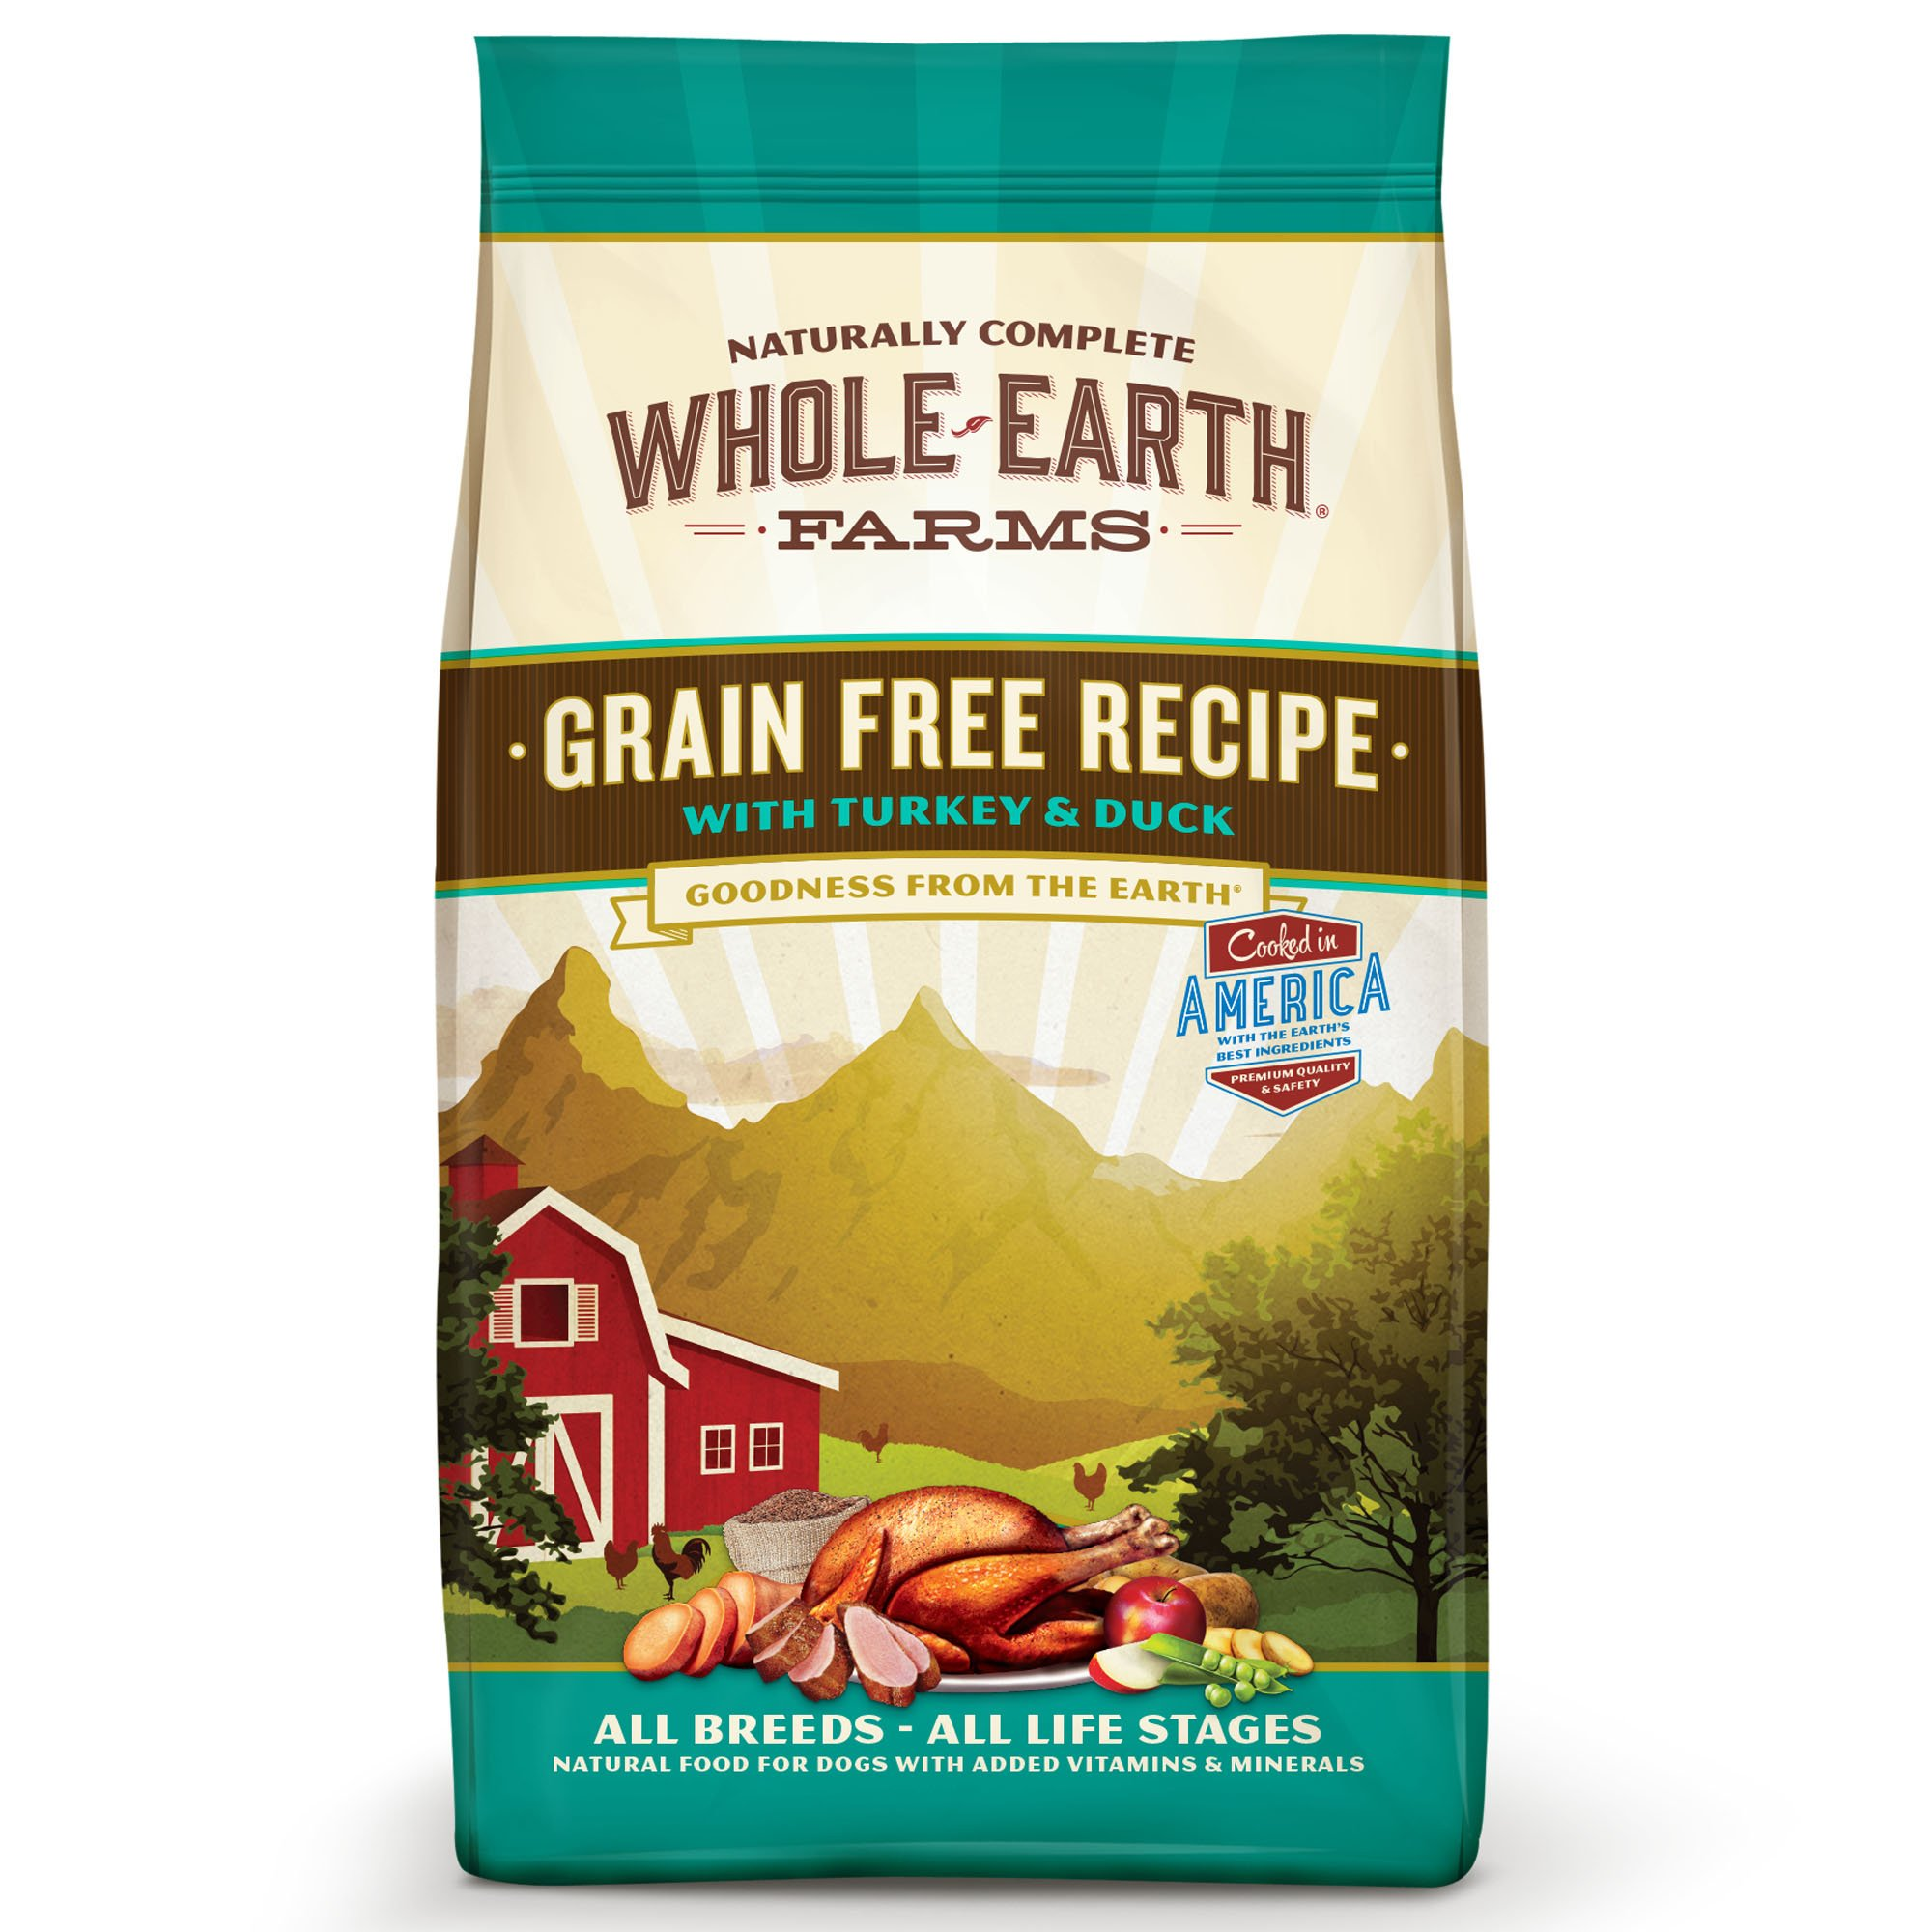 Whole Earth Farms Grain Free Recipe with Turkey & Duck Dry Dog Food, 25 lbs.